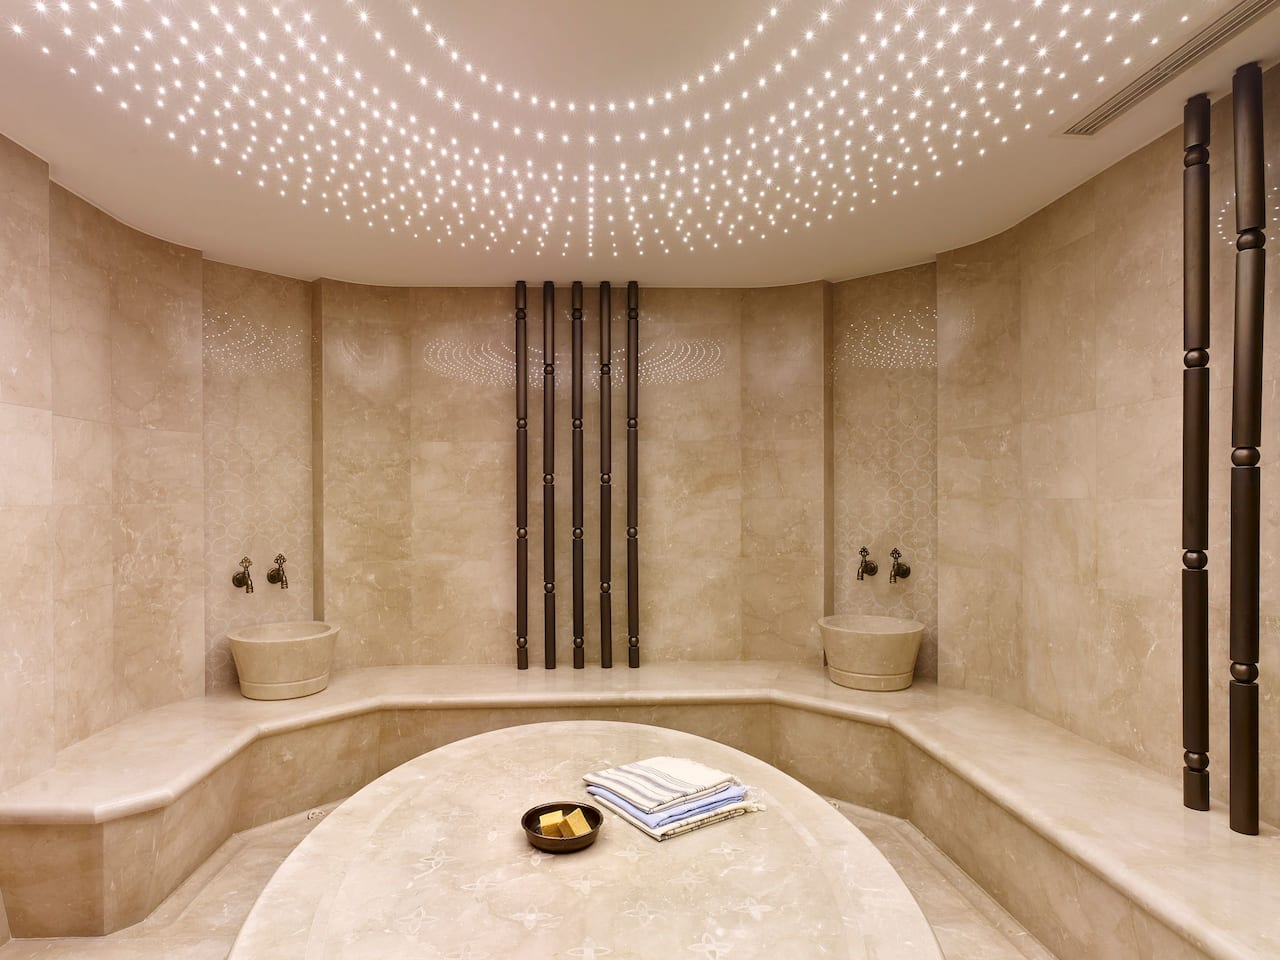 Spa at Hyatt Regency Istanbul